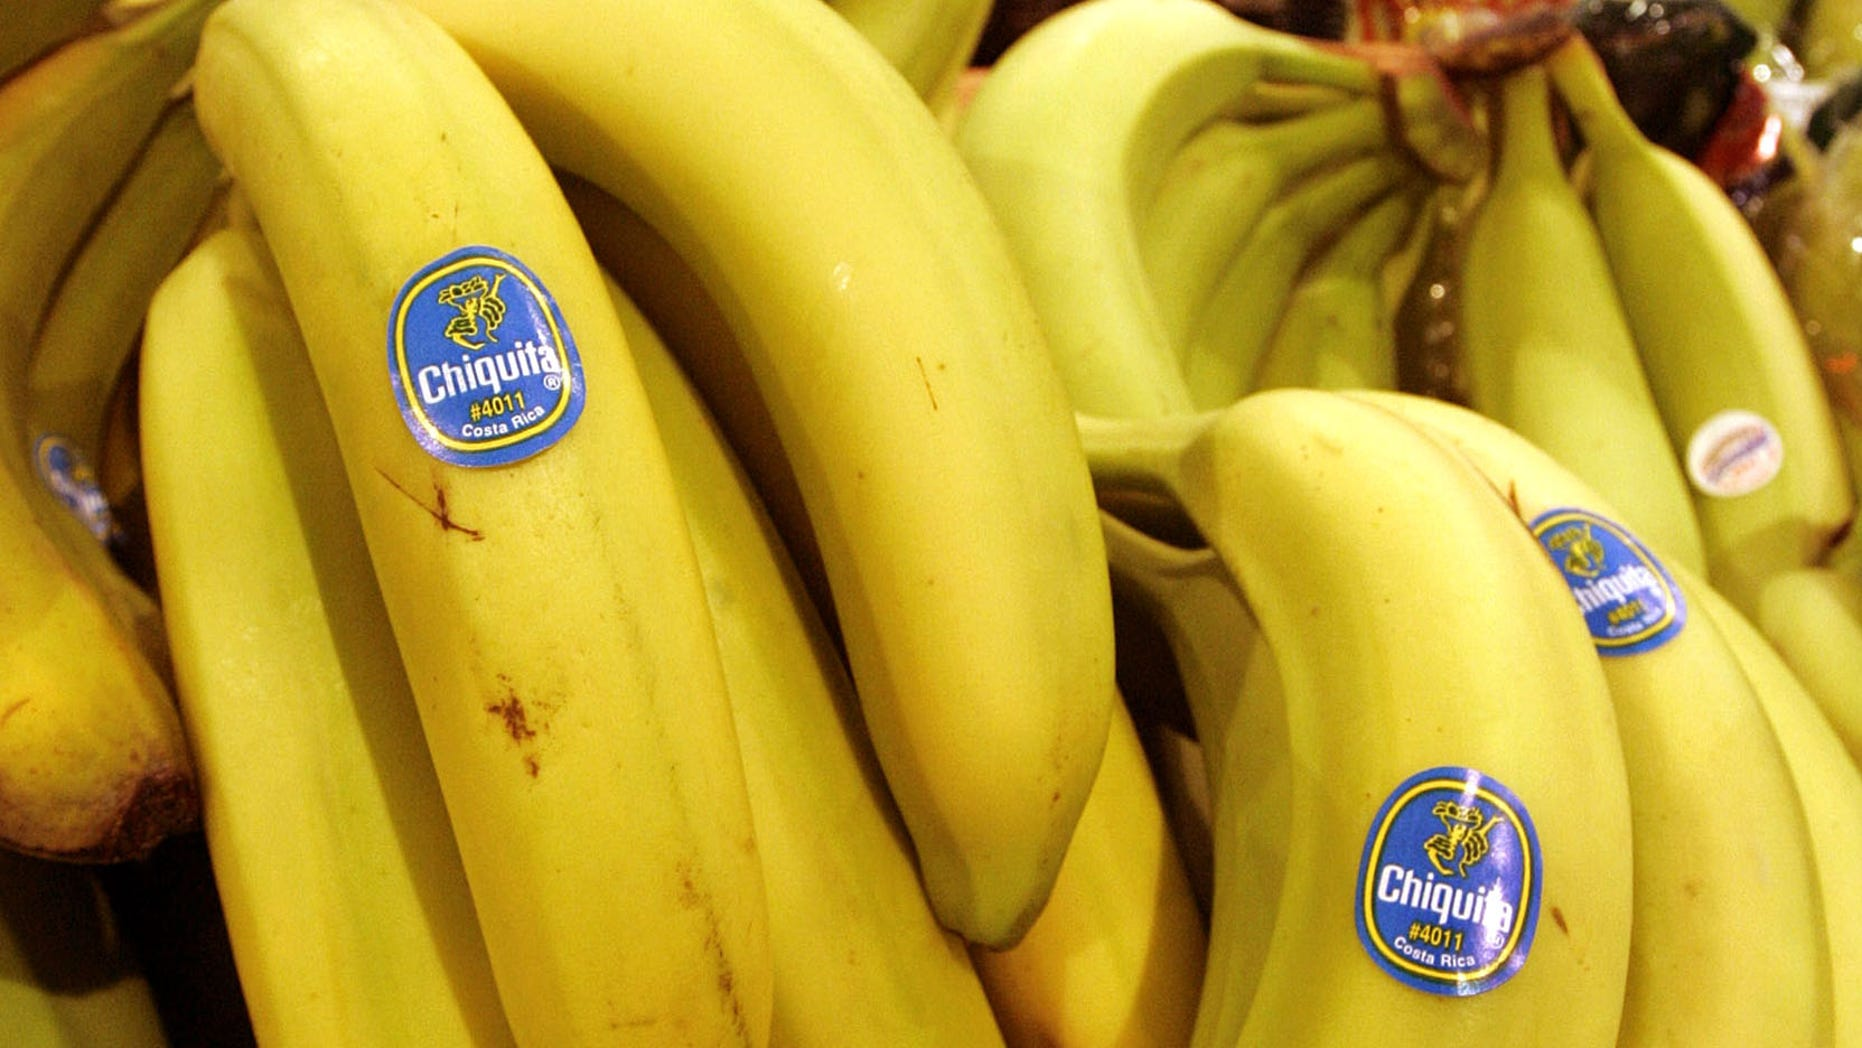 FILE - In this Aug. 3, 2005 file photo, Chiquita bananas are on display at a grocery store in Bainbridge, Ohio. Fruit supply companies Chiquita of the United States and Fyffes of Ireland said Monday, March 10, 2014, they had agreed to merge to create the world's biggest banana supplier. (AP Photo/Amy Sancetta, File)